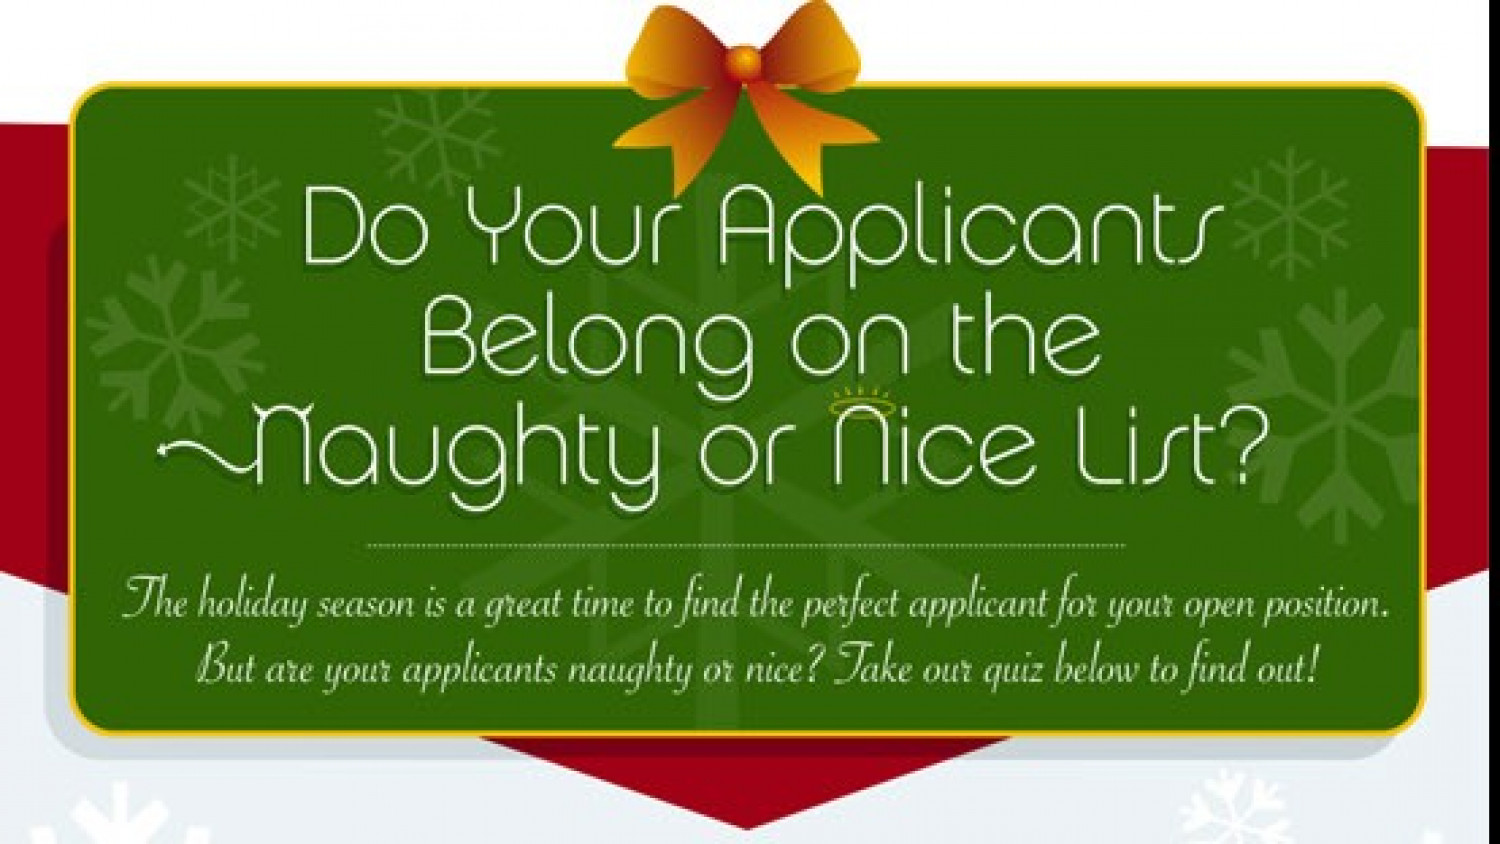 Do Your Applicants Belong on the Naughty or Nice List? Infographic